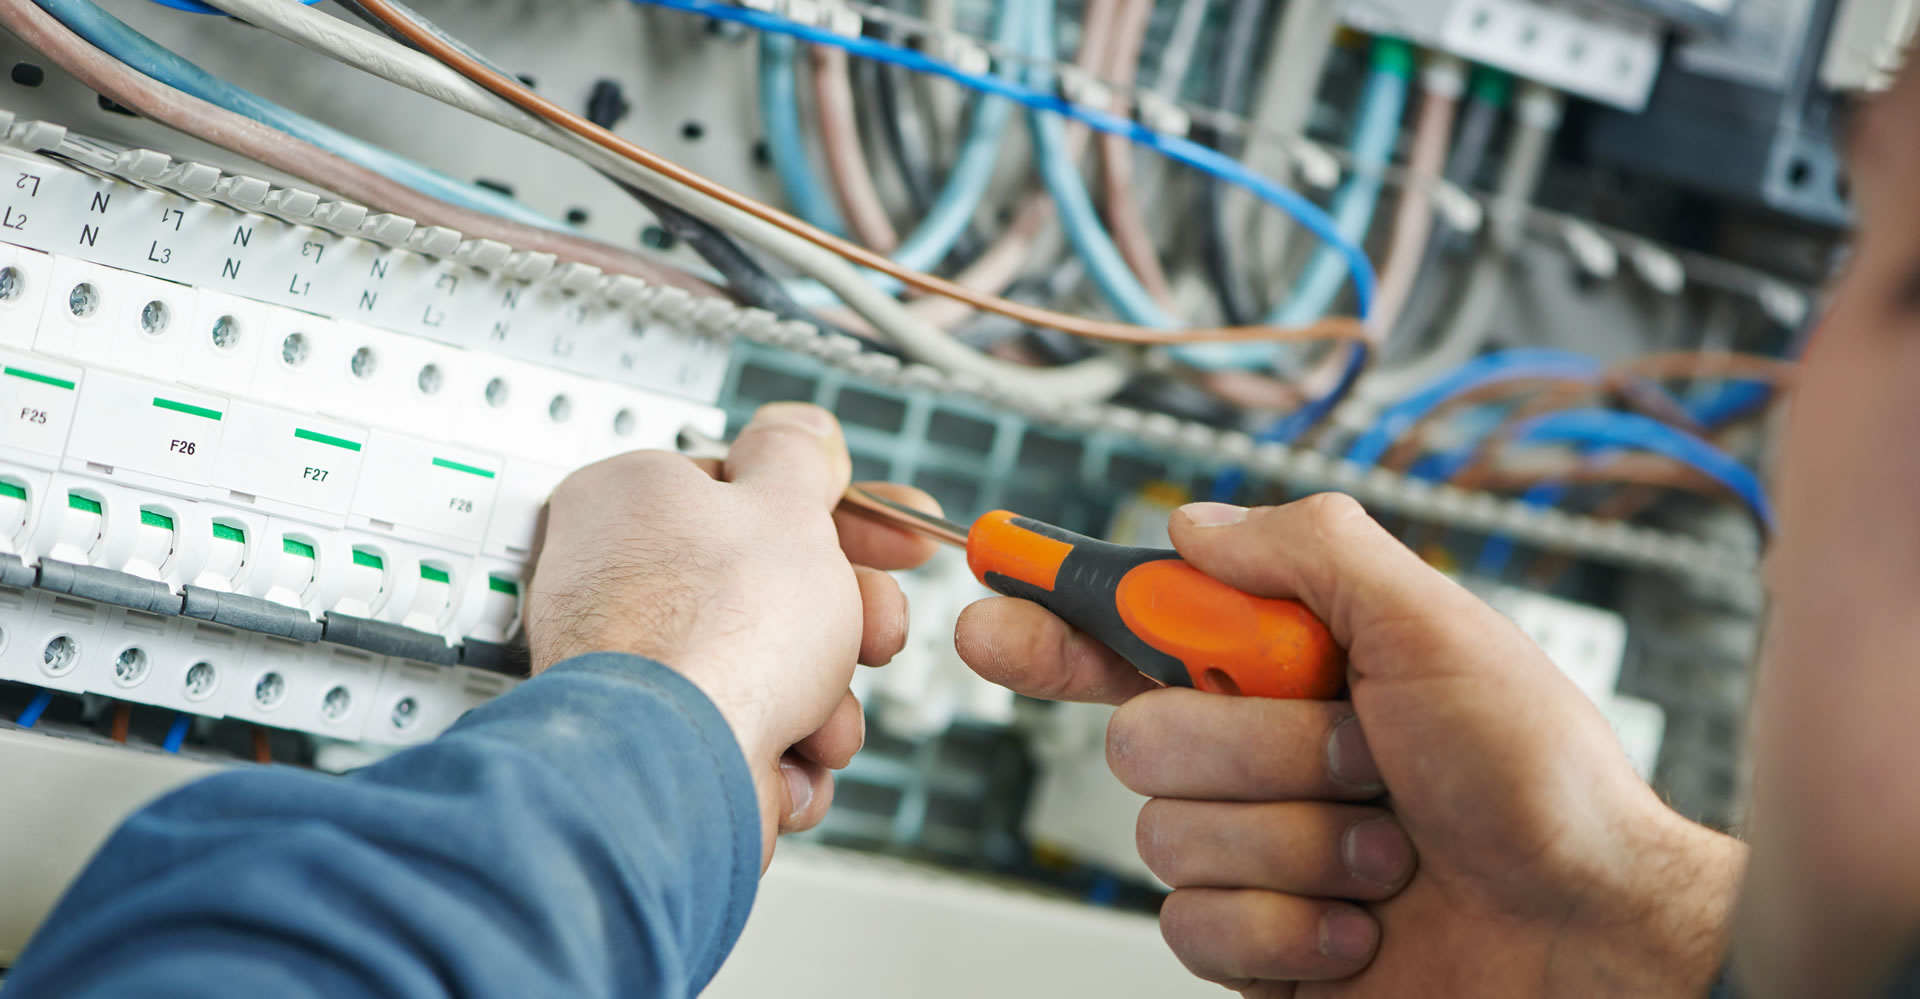 Abb Acs550 Wiring Diagram also P1507283 as well Electric Control Systems besides 4800484 as well Smc 3 Fault Codes Wiring Diagrams. on the automation group vfd wiring